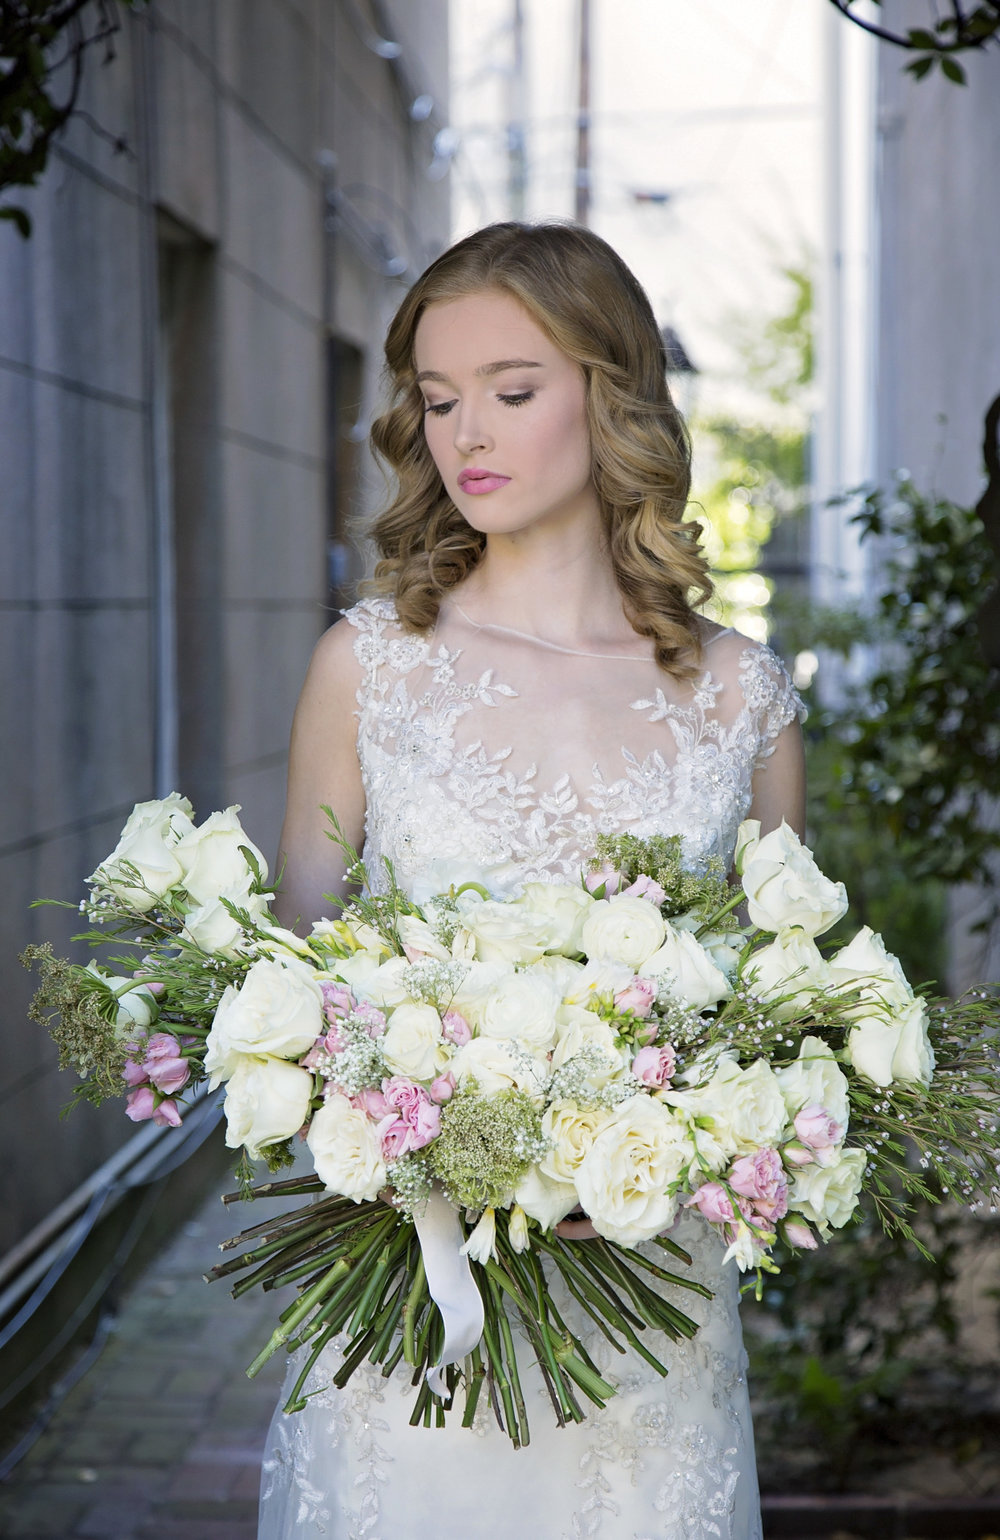 rustik-image-photography-savannah-wedding-photographer-maggie-sottero-tami-savannah-bridal-boutique-ivory-and-beau-bridal-boutique-savannah-wedding-florist-savannah-bridal-shop-savannah-weddings-savannah-gowns-1.jpg